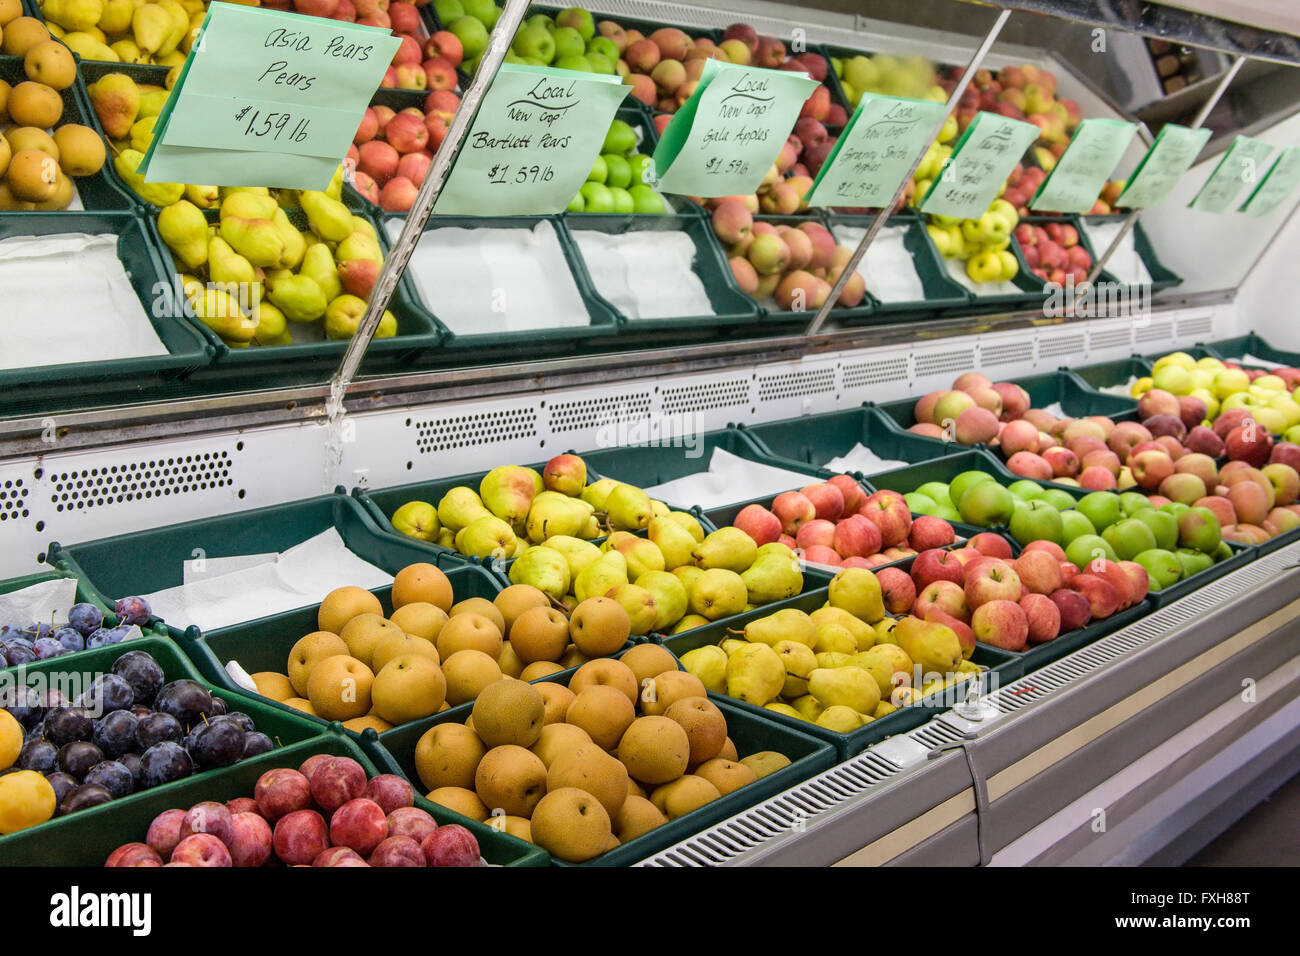 Refrigerated produce (Asia and Bartlett pears, as well as apples) for sale at a Farmers' Market near Orondo, - Stock Image